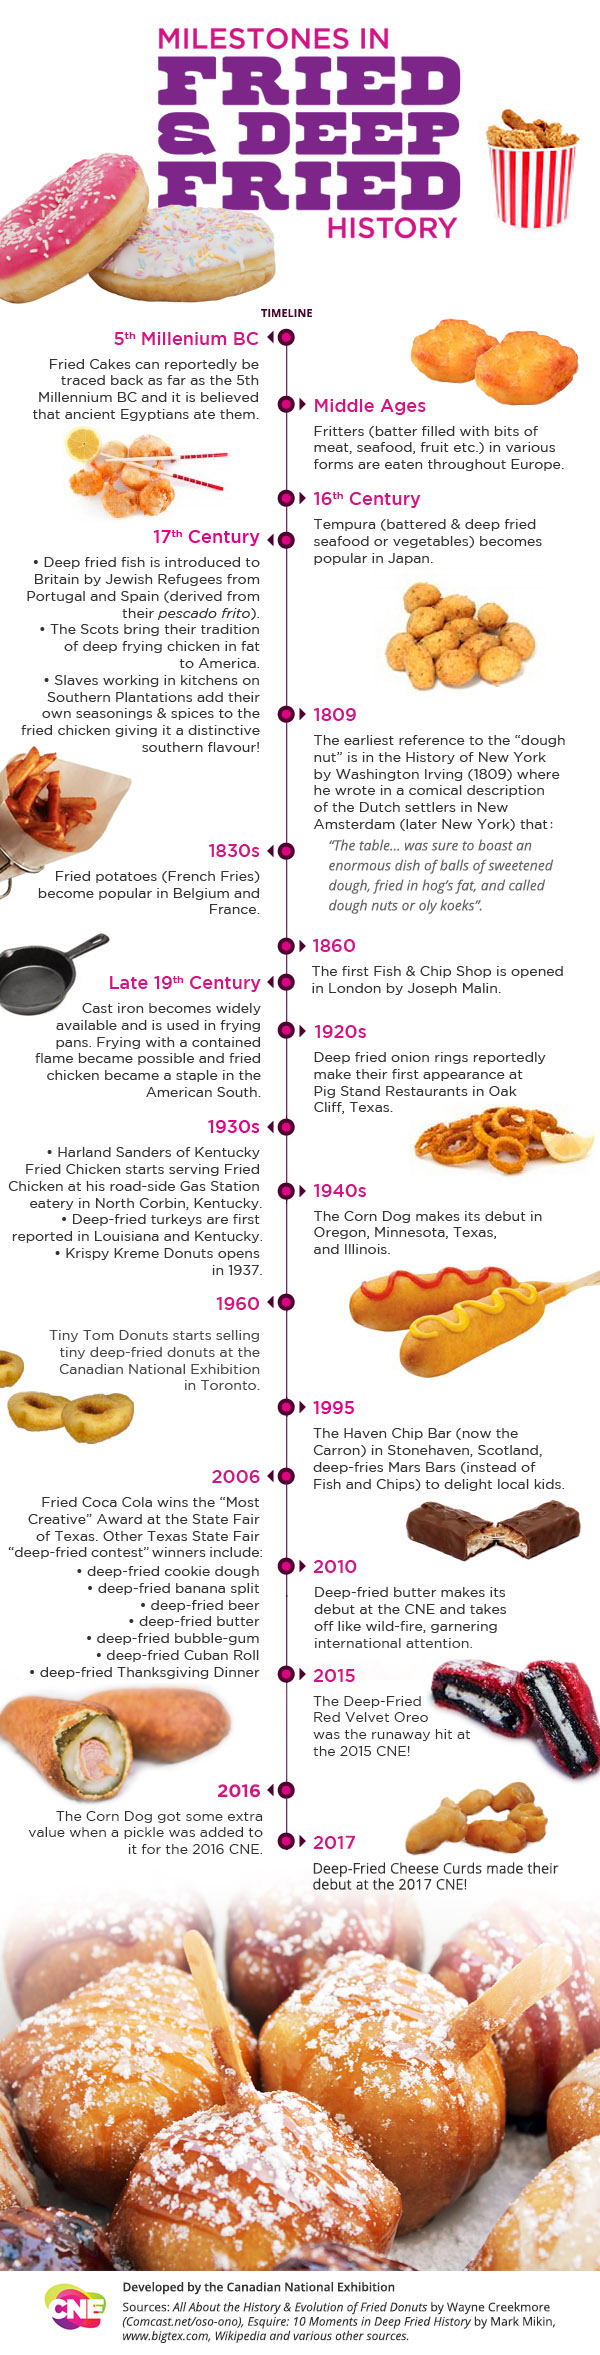 Milestones In Fried  and  Deep Fried History